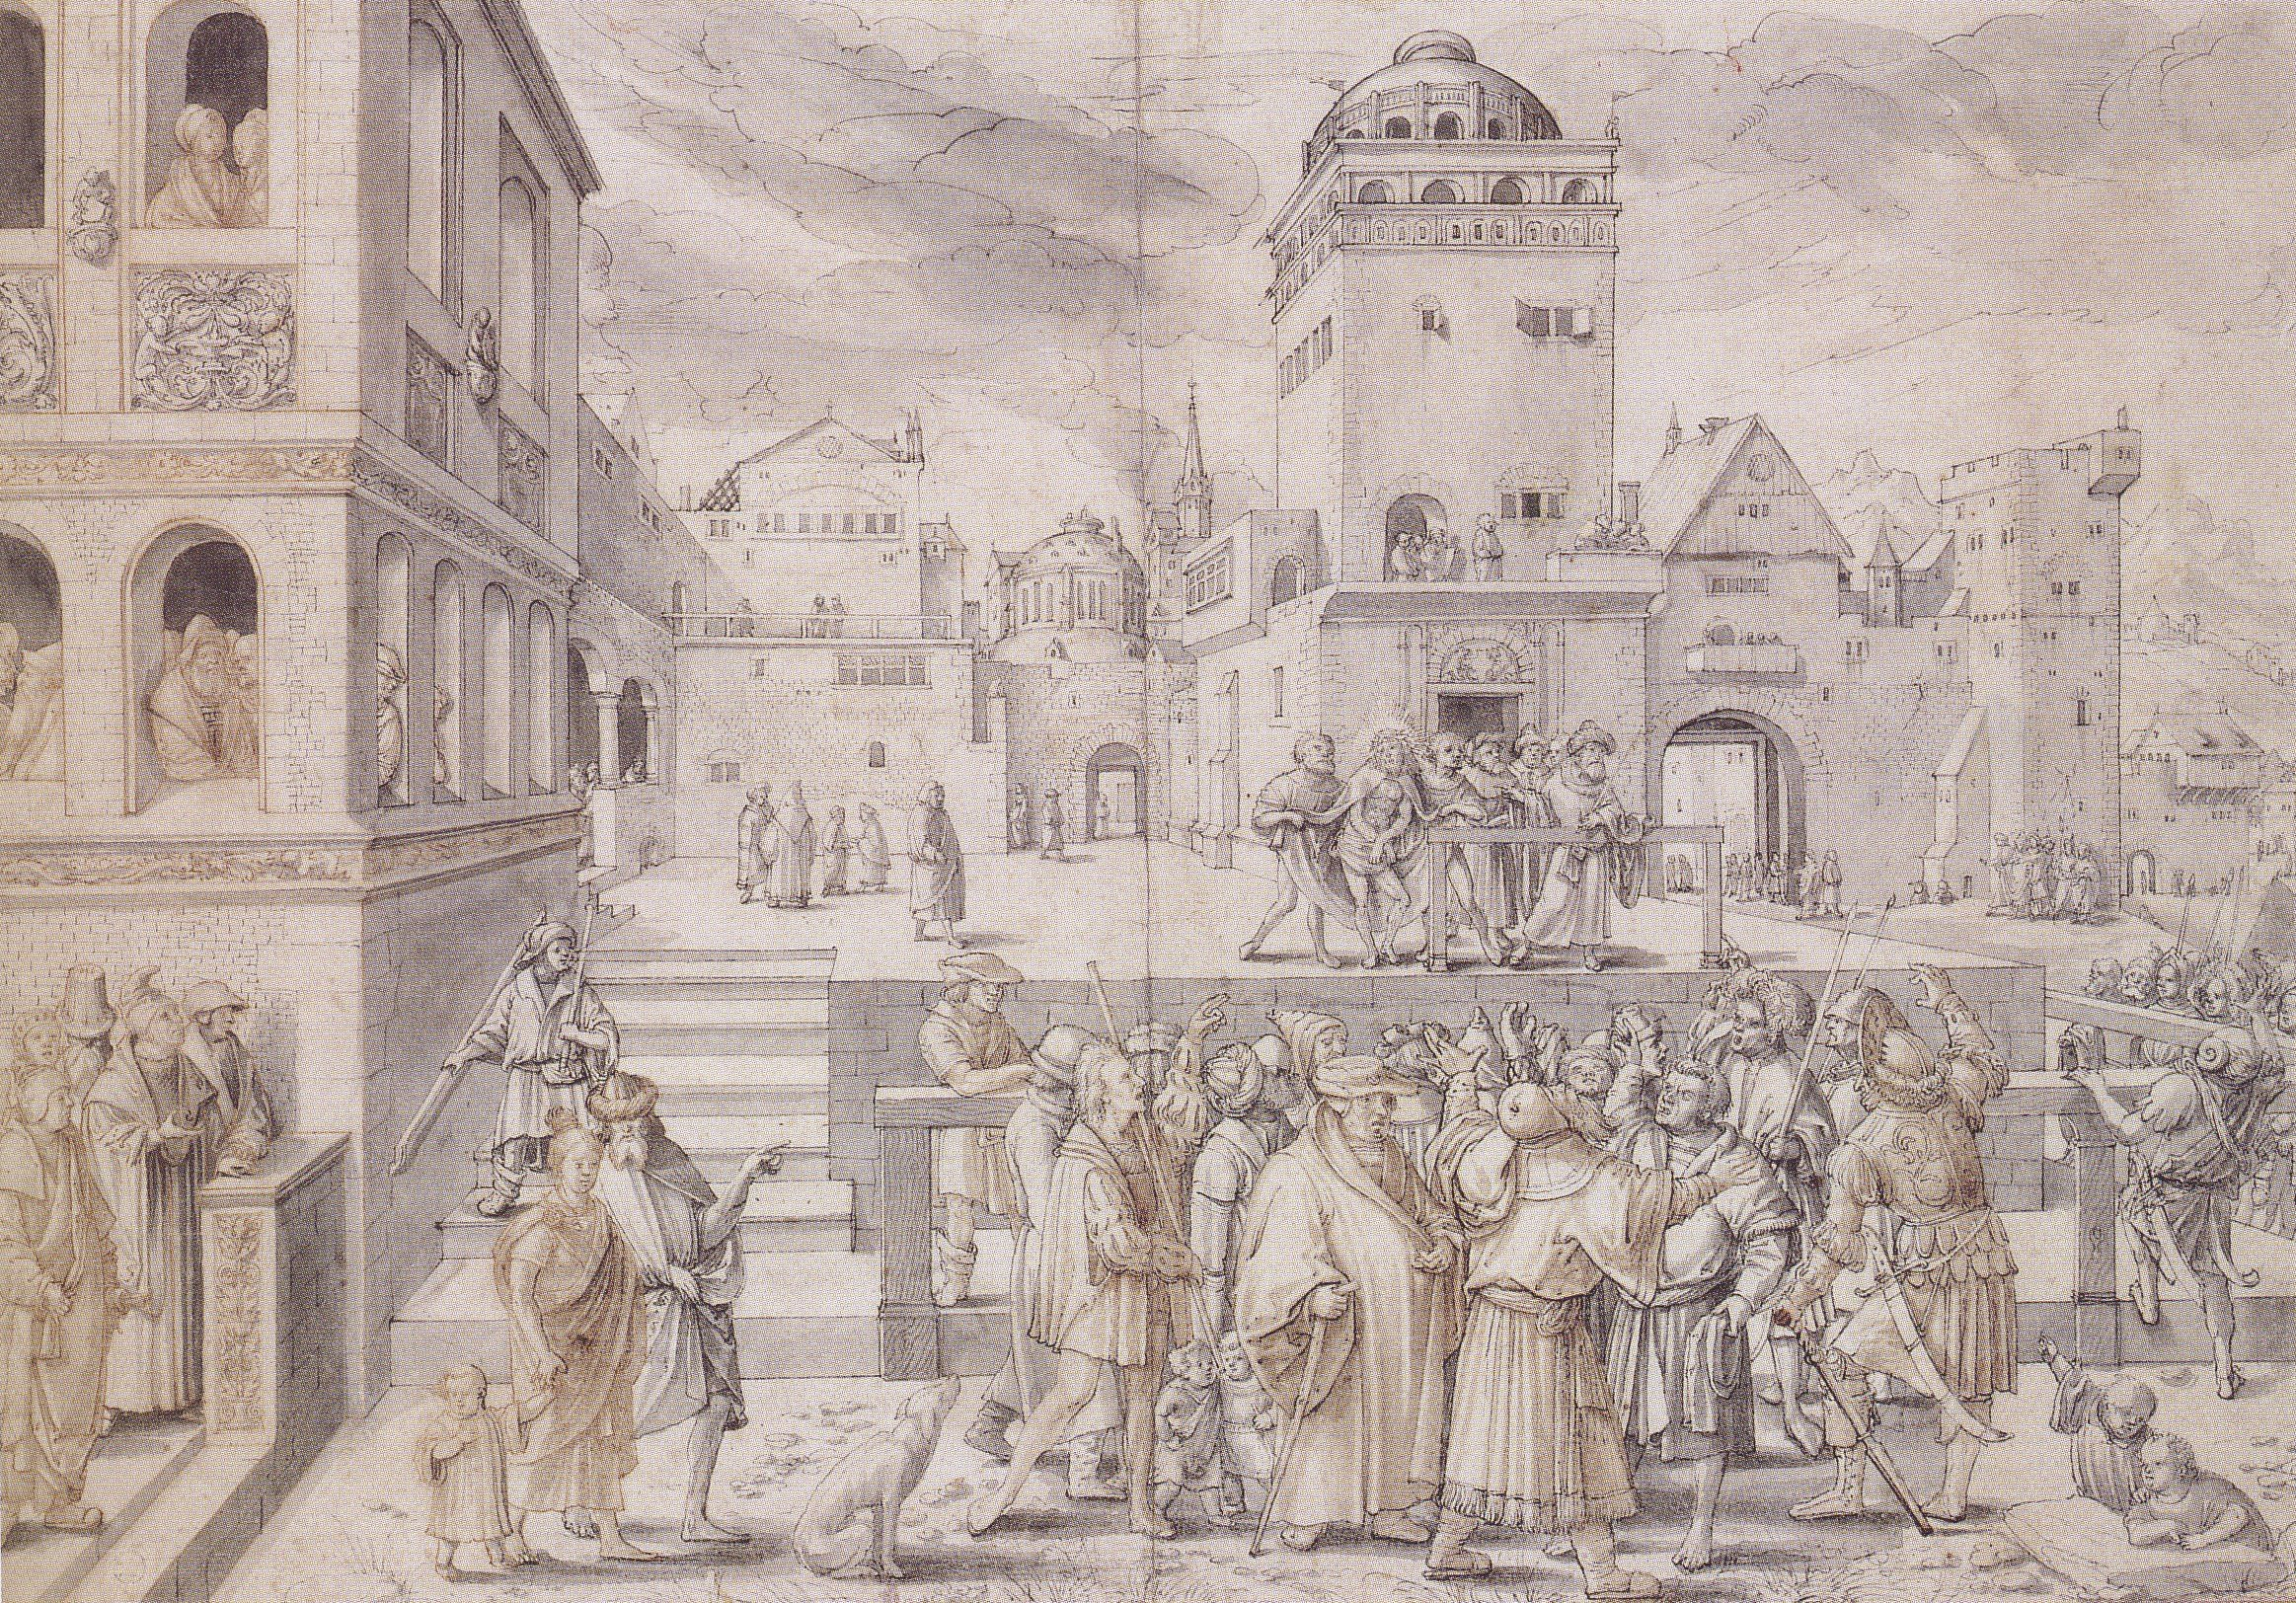 Ecce Homo, c.1515 by Hans Holbein the Younger after Lucas van Leyden